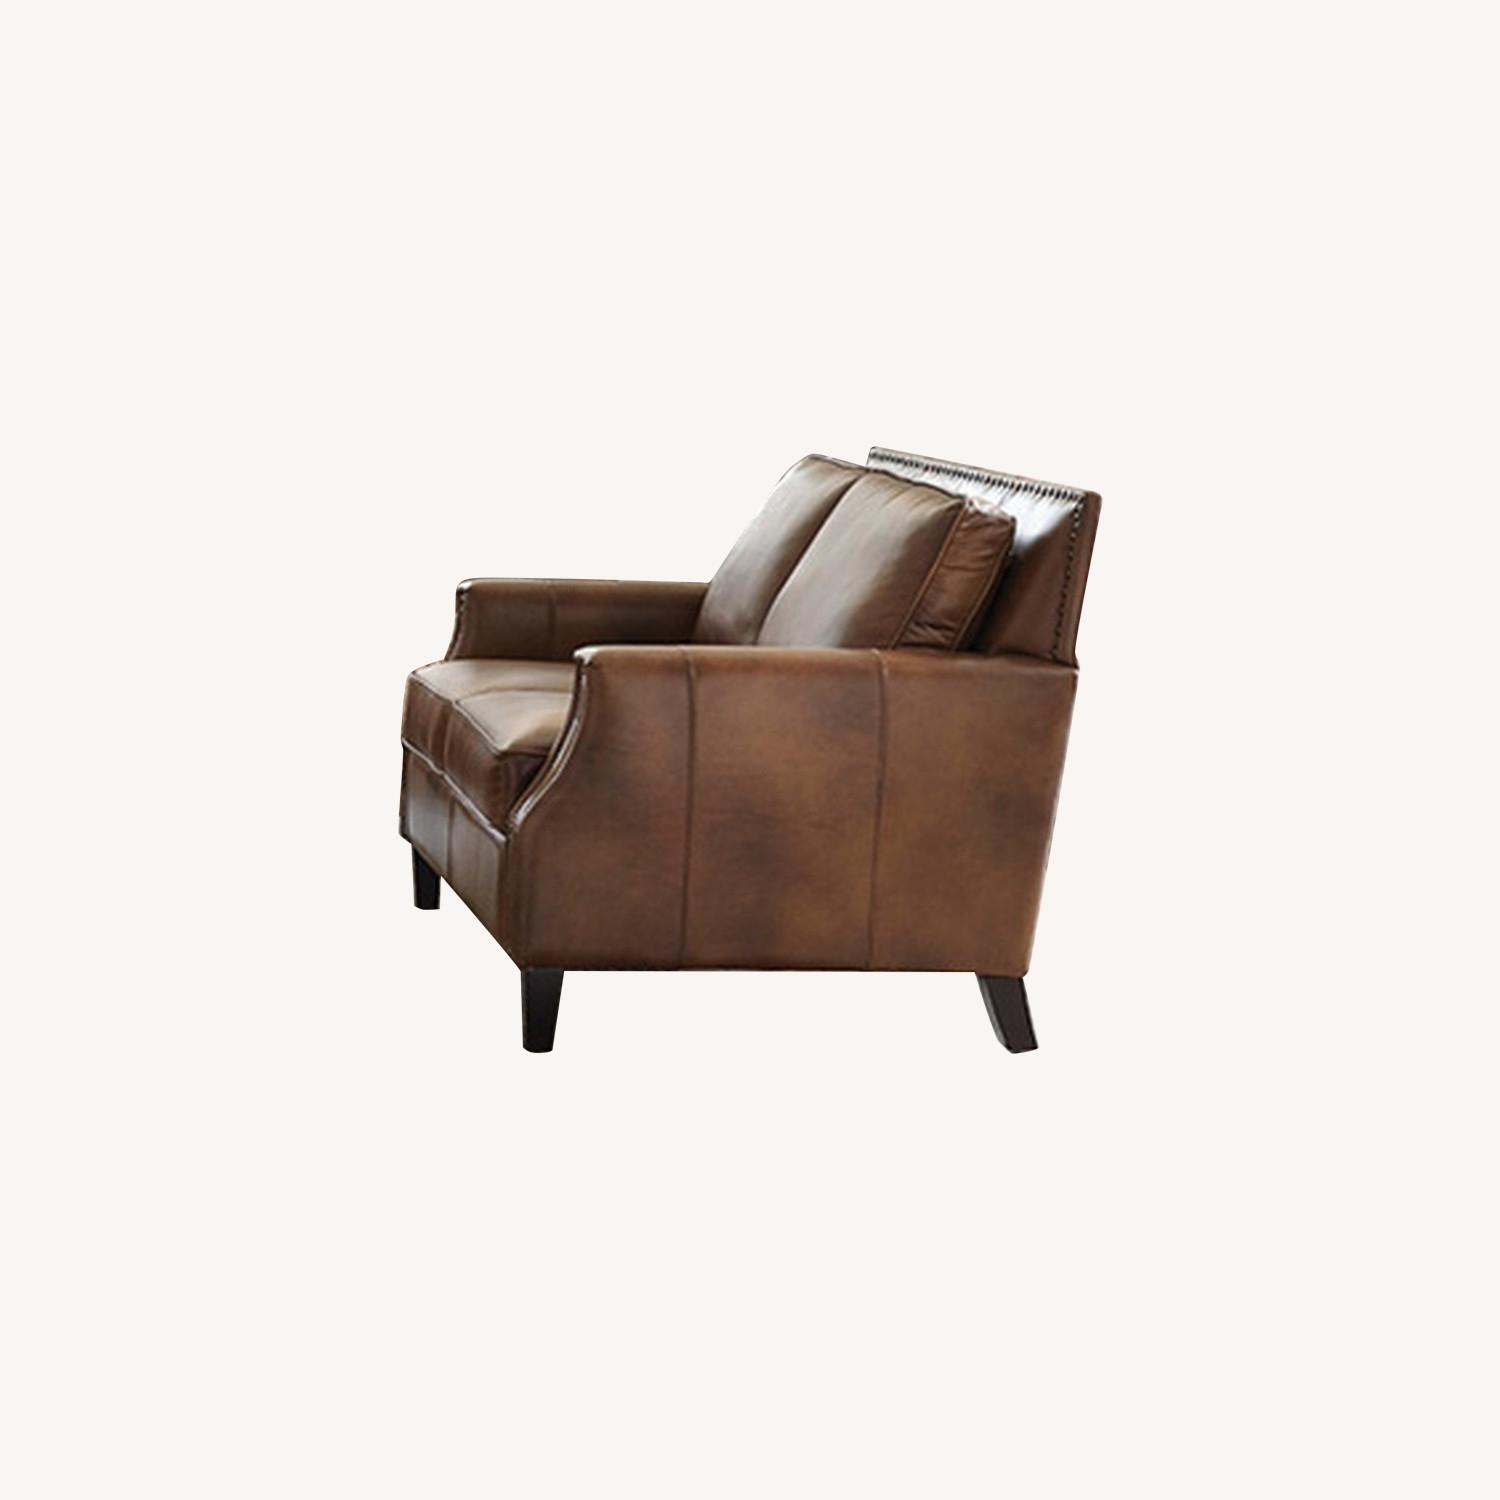 Loveseat In Brown Sugar Leather Upholstery - image-3